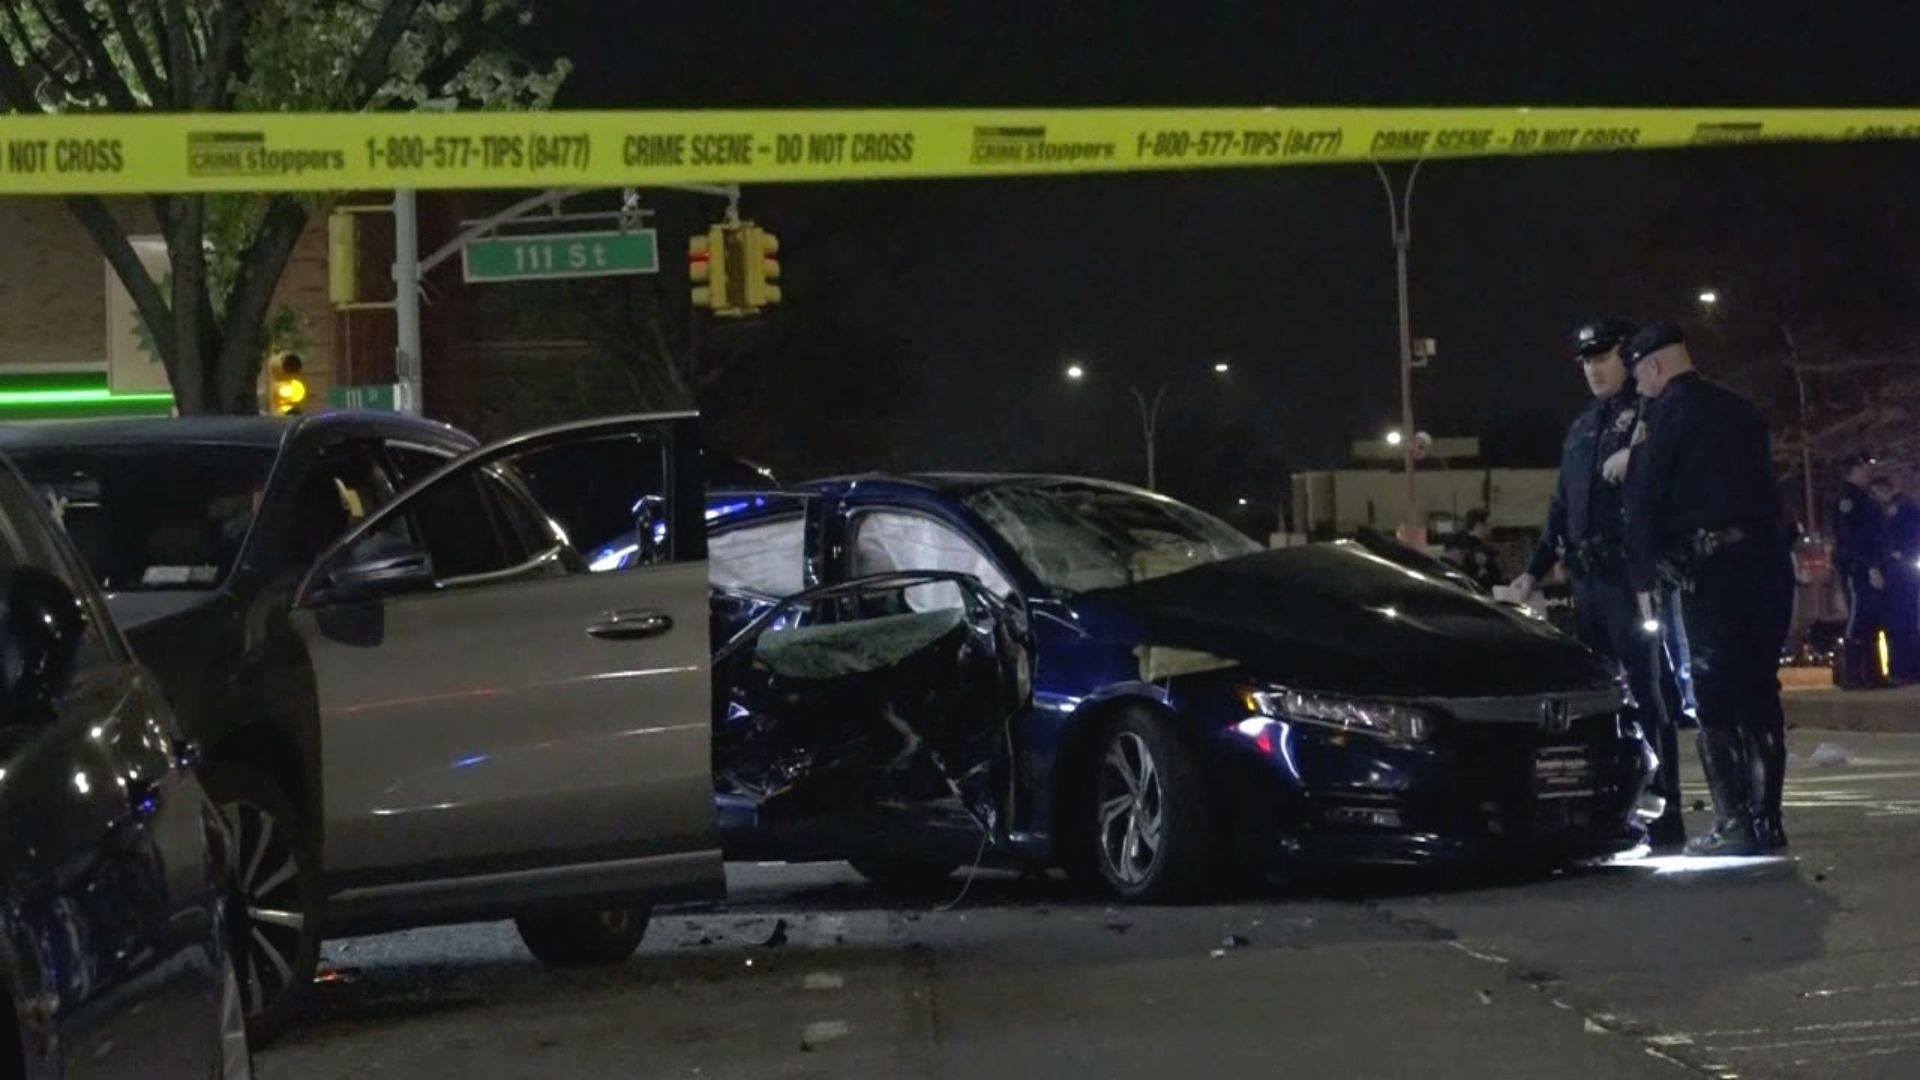 Scene of a deadly multiple-vehicle crash at the intersection of 111th Street and Atlantic Avenue in the Richmond Hill area of Queens on April 21, 2021.